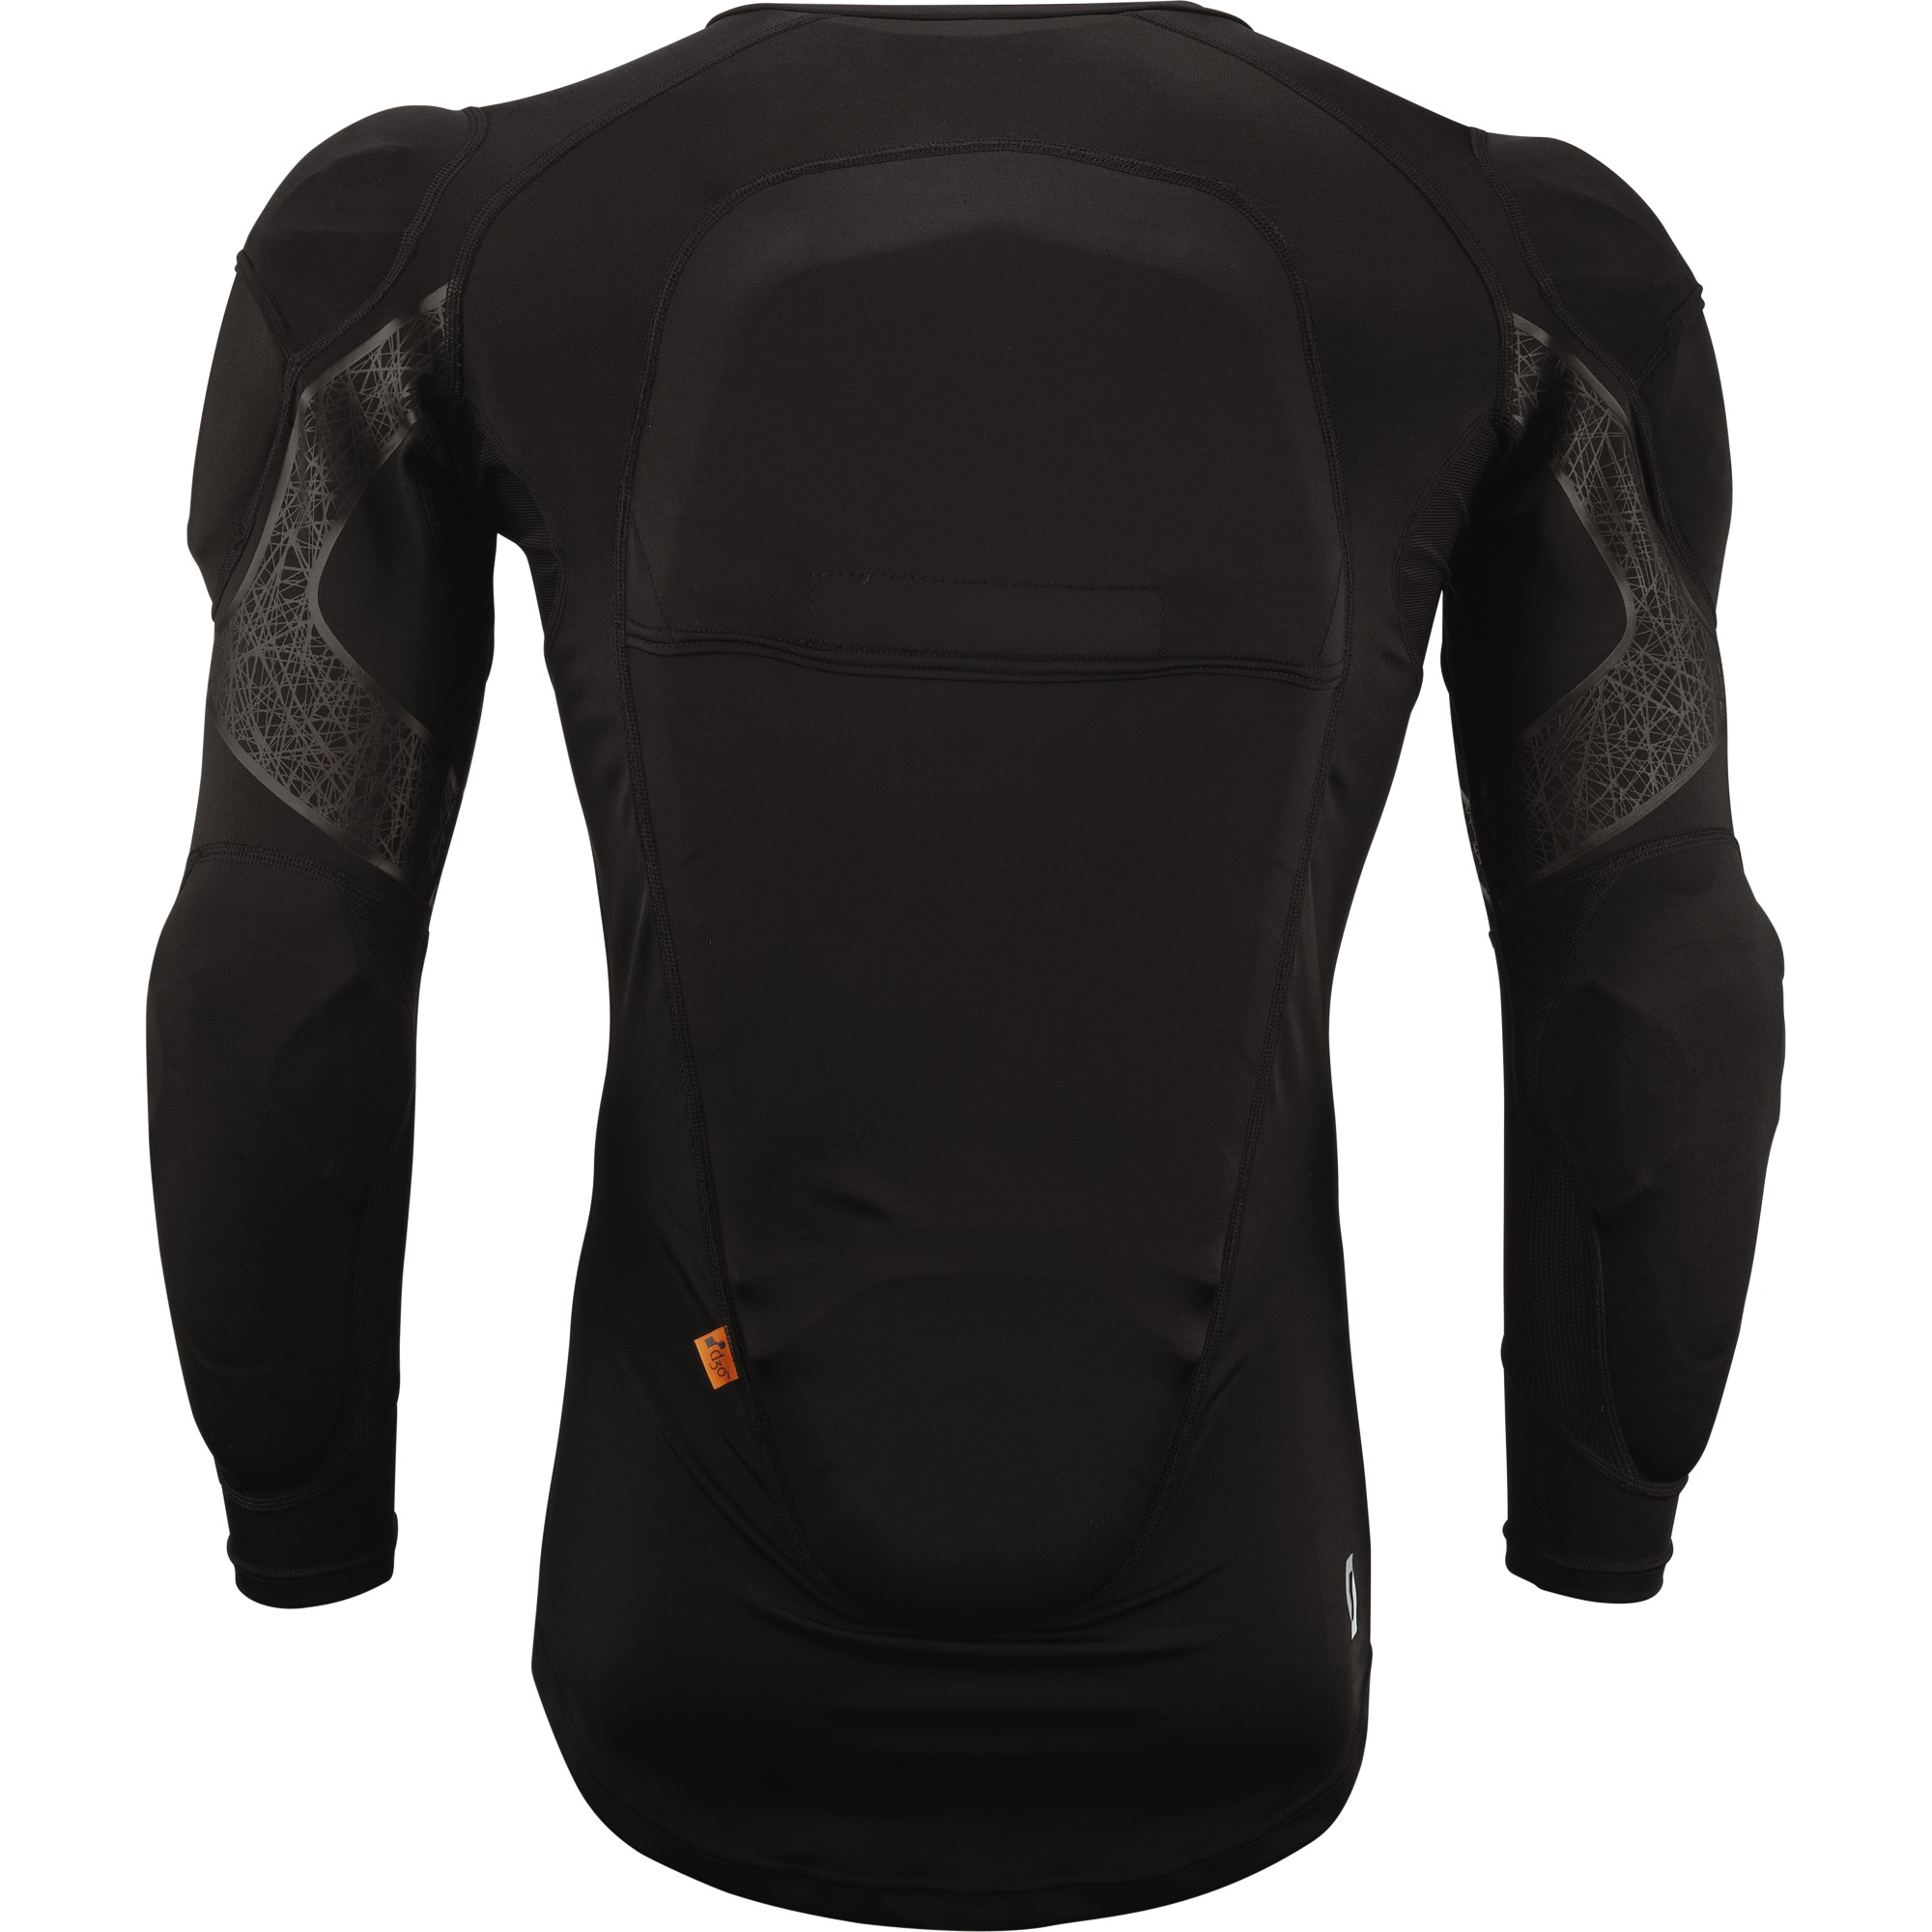 Compression Gear Recruit Pro II